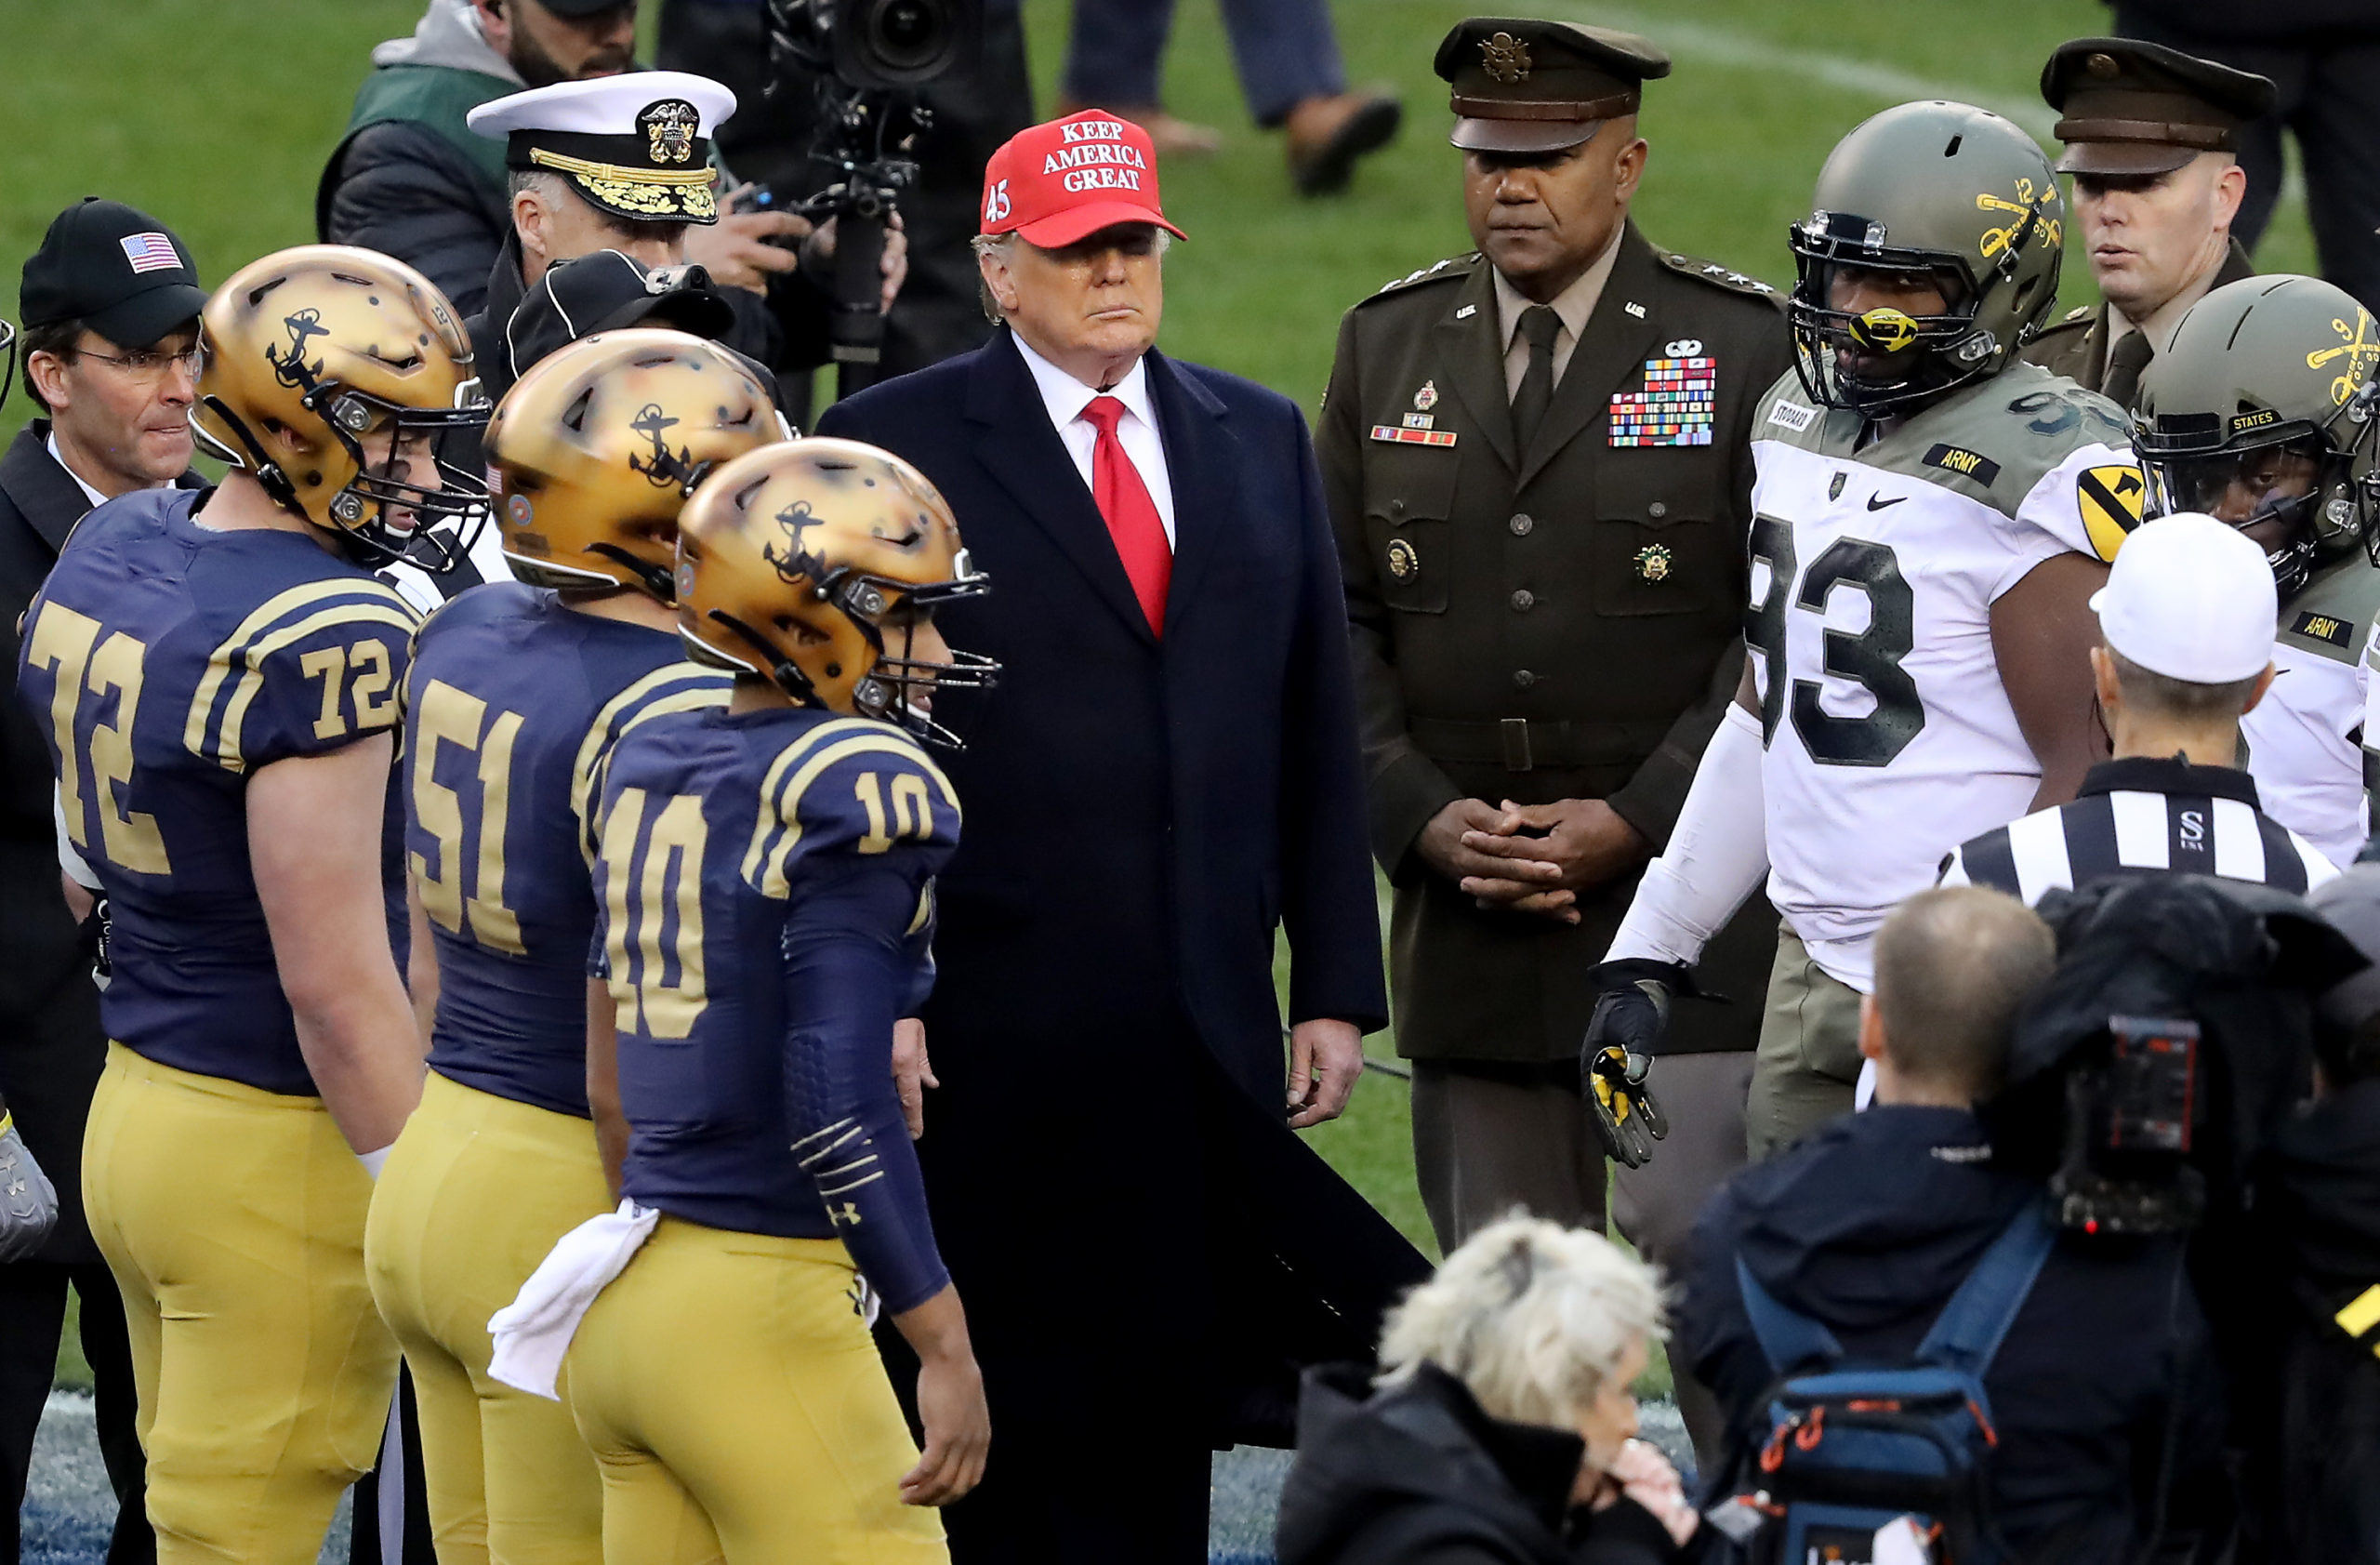 PHILADELPHIA, PENNSYLVANIA - DECEMBER 14: U.S. President Donald Trump participates in the coin toss before the game between the Army Black Knights and the Navy Midshipmen at Lincoln Financial Field on December 14, 2019 in Philadelphia, Pennsylvania. (Photo by Elsa/Getty Images)